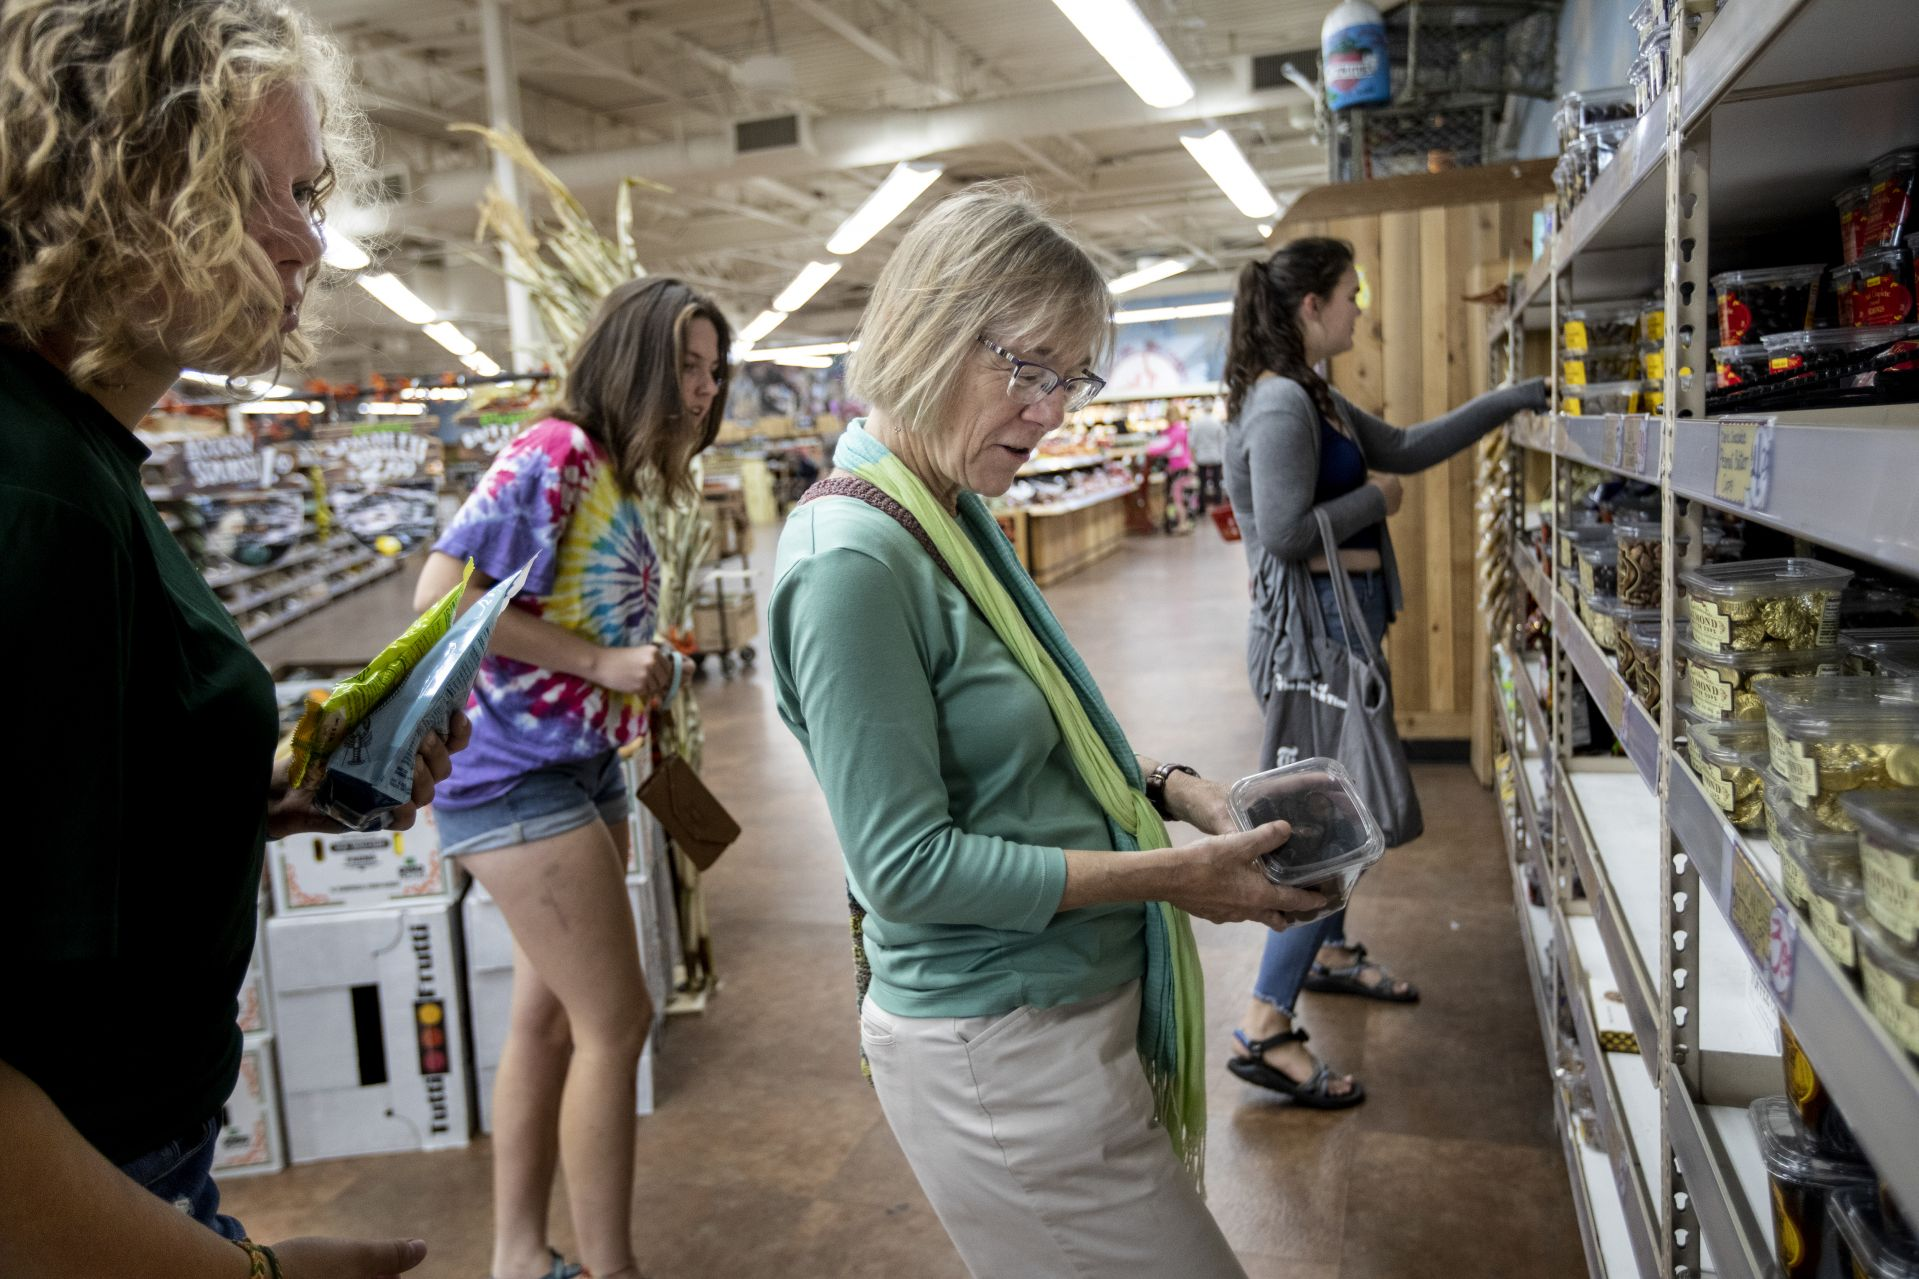 A trip to a Trader Joe's store in Portland became a teachable moment for the three young students who accompanied Jane Costlow to the Climate Strike in Portland on Sept. 20. (Phyllis Graber Jensen/Bates College)